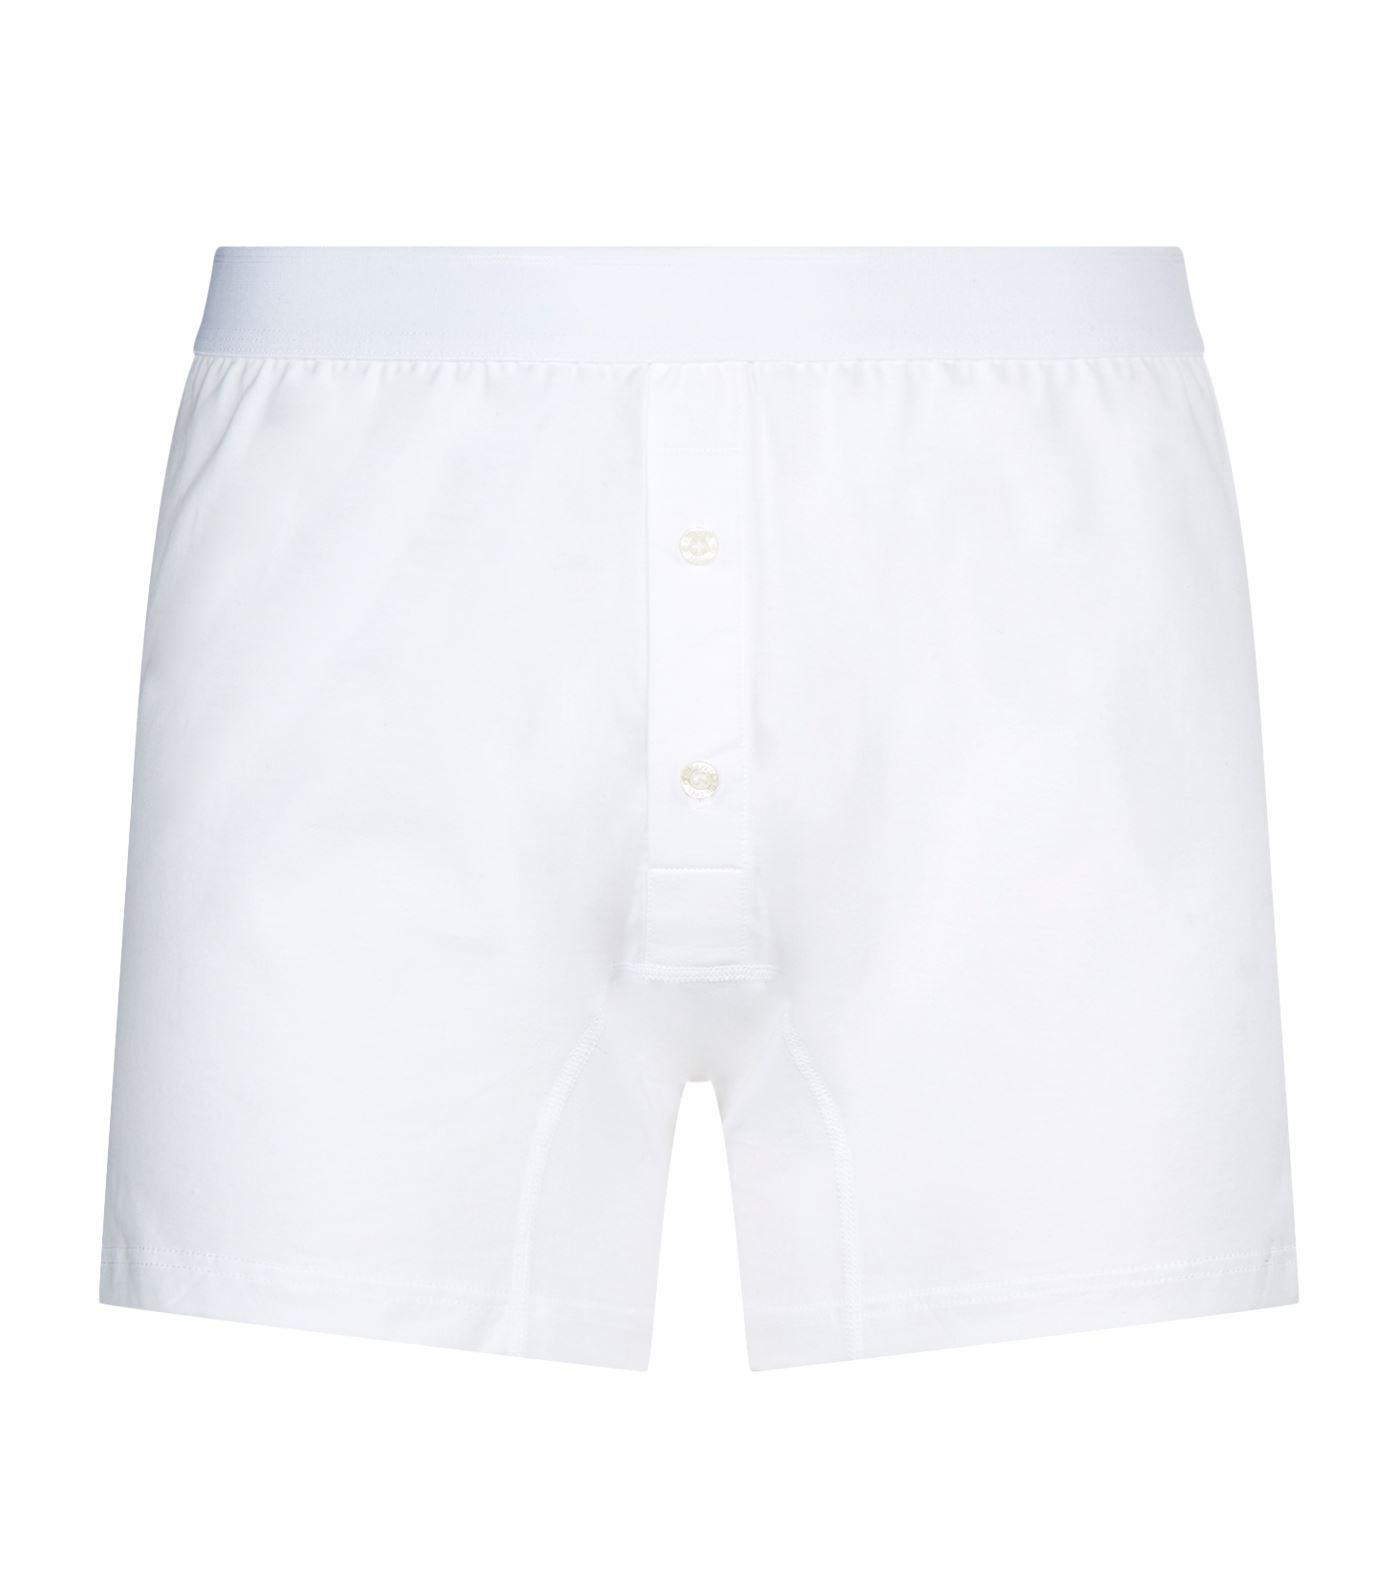 0dce64450451 Lyst - Sunspel Two-button Boxer Briefs in White for Men